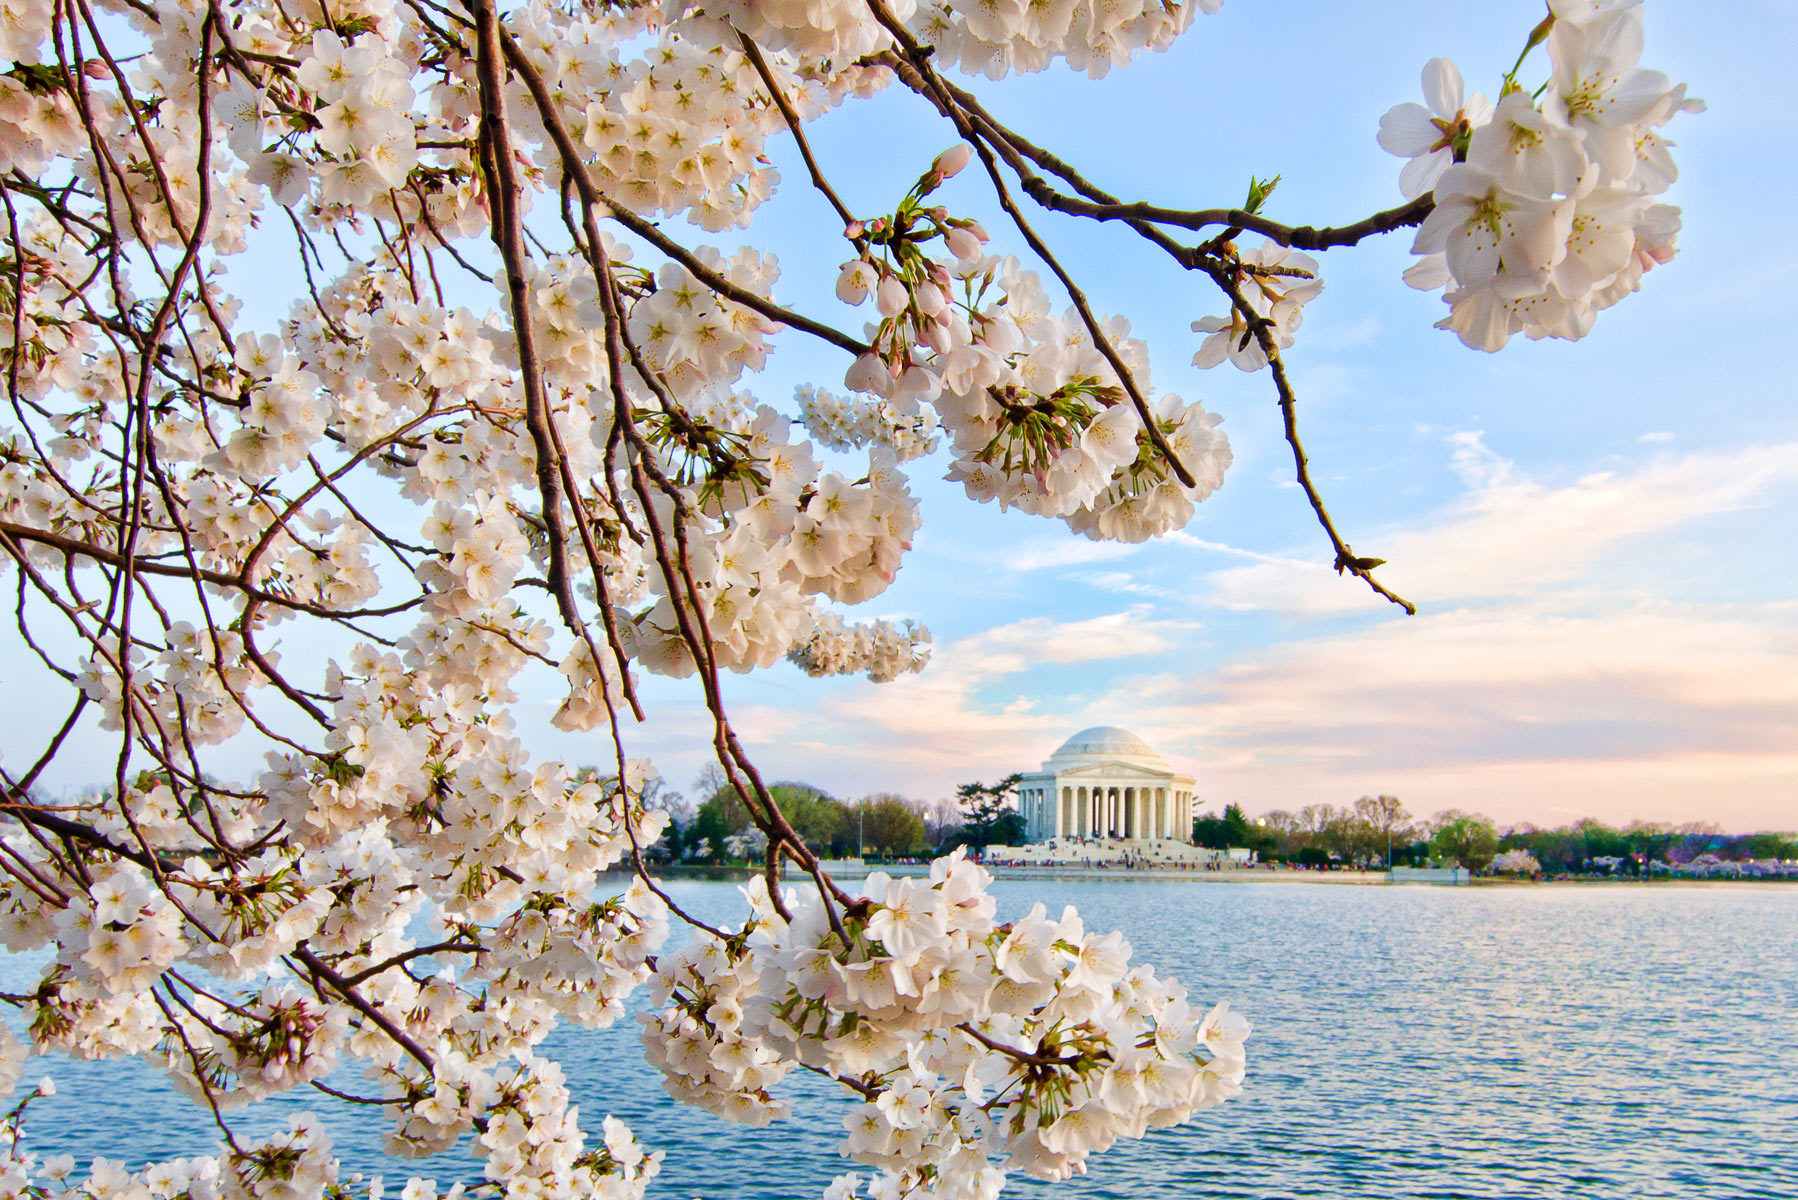 Cherry Blossom Time in Washington, DC